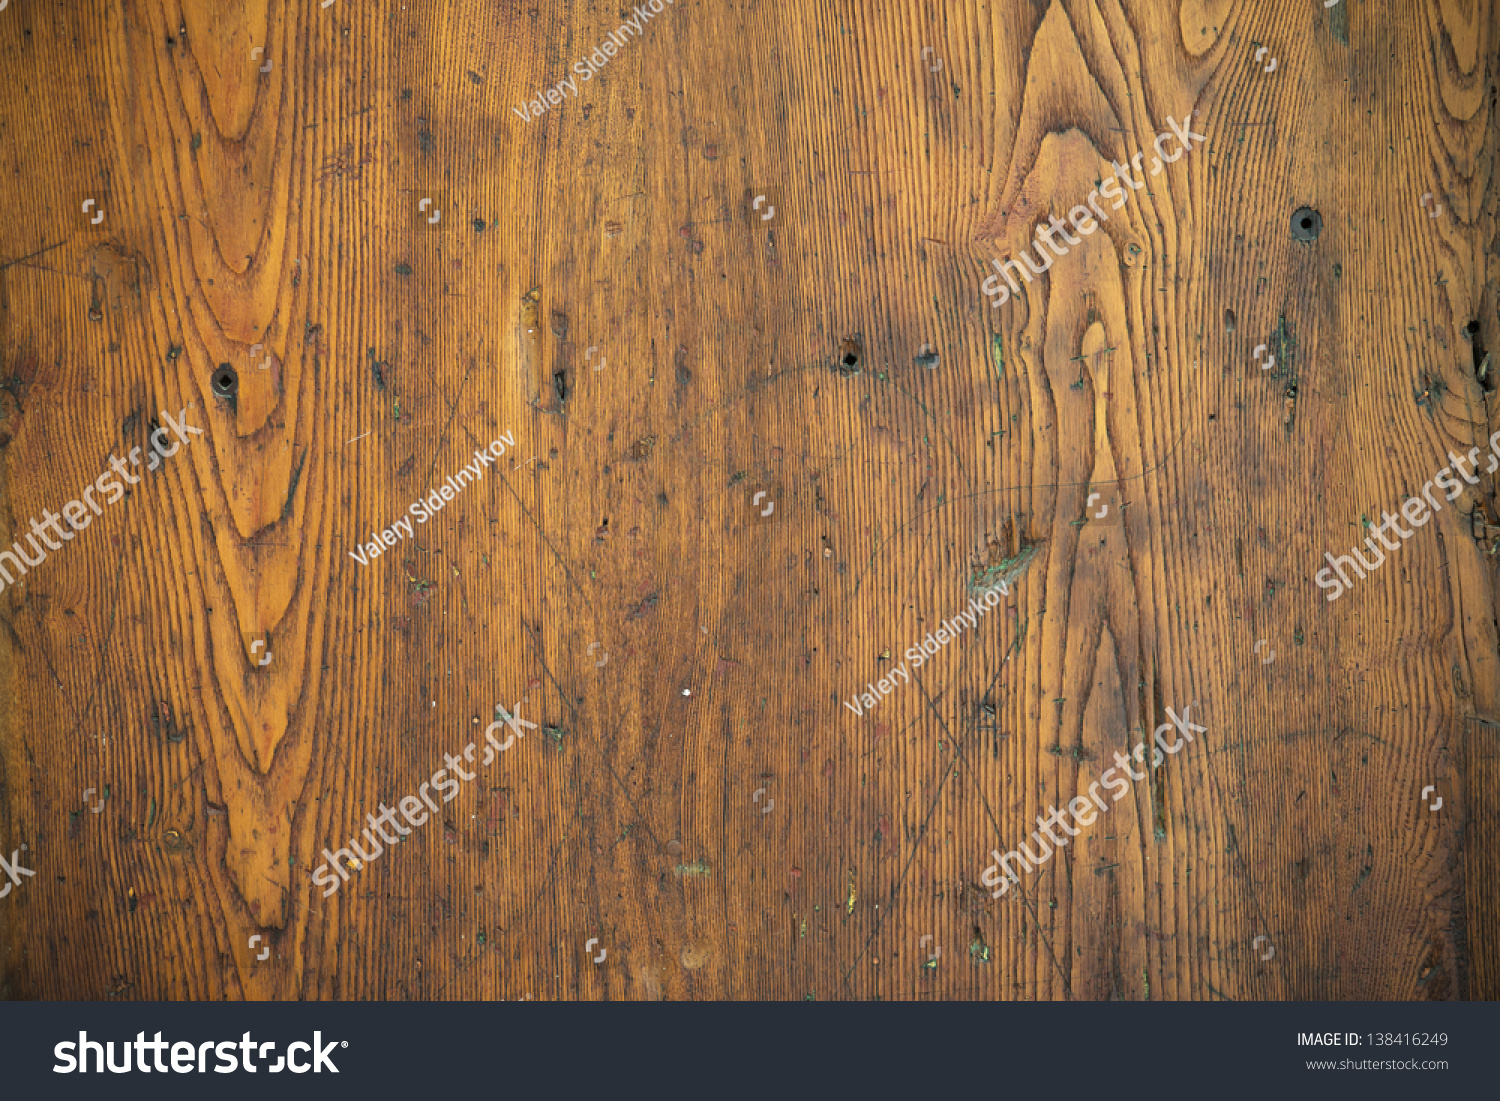 Wood table top texture - Wood Texture Old Oak Table Top